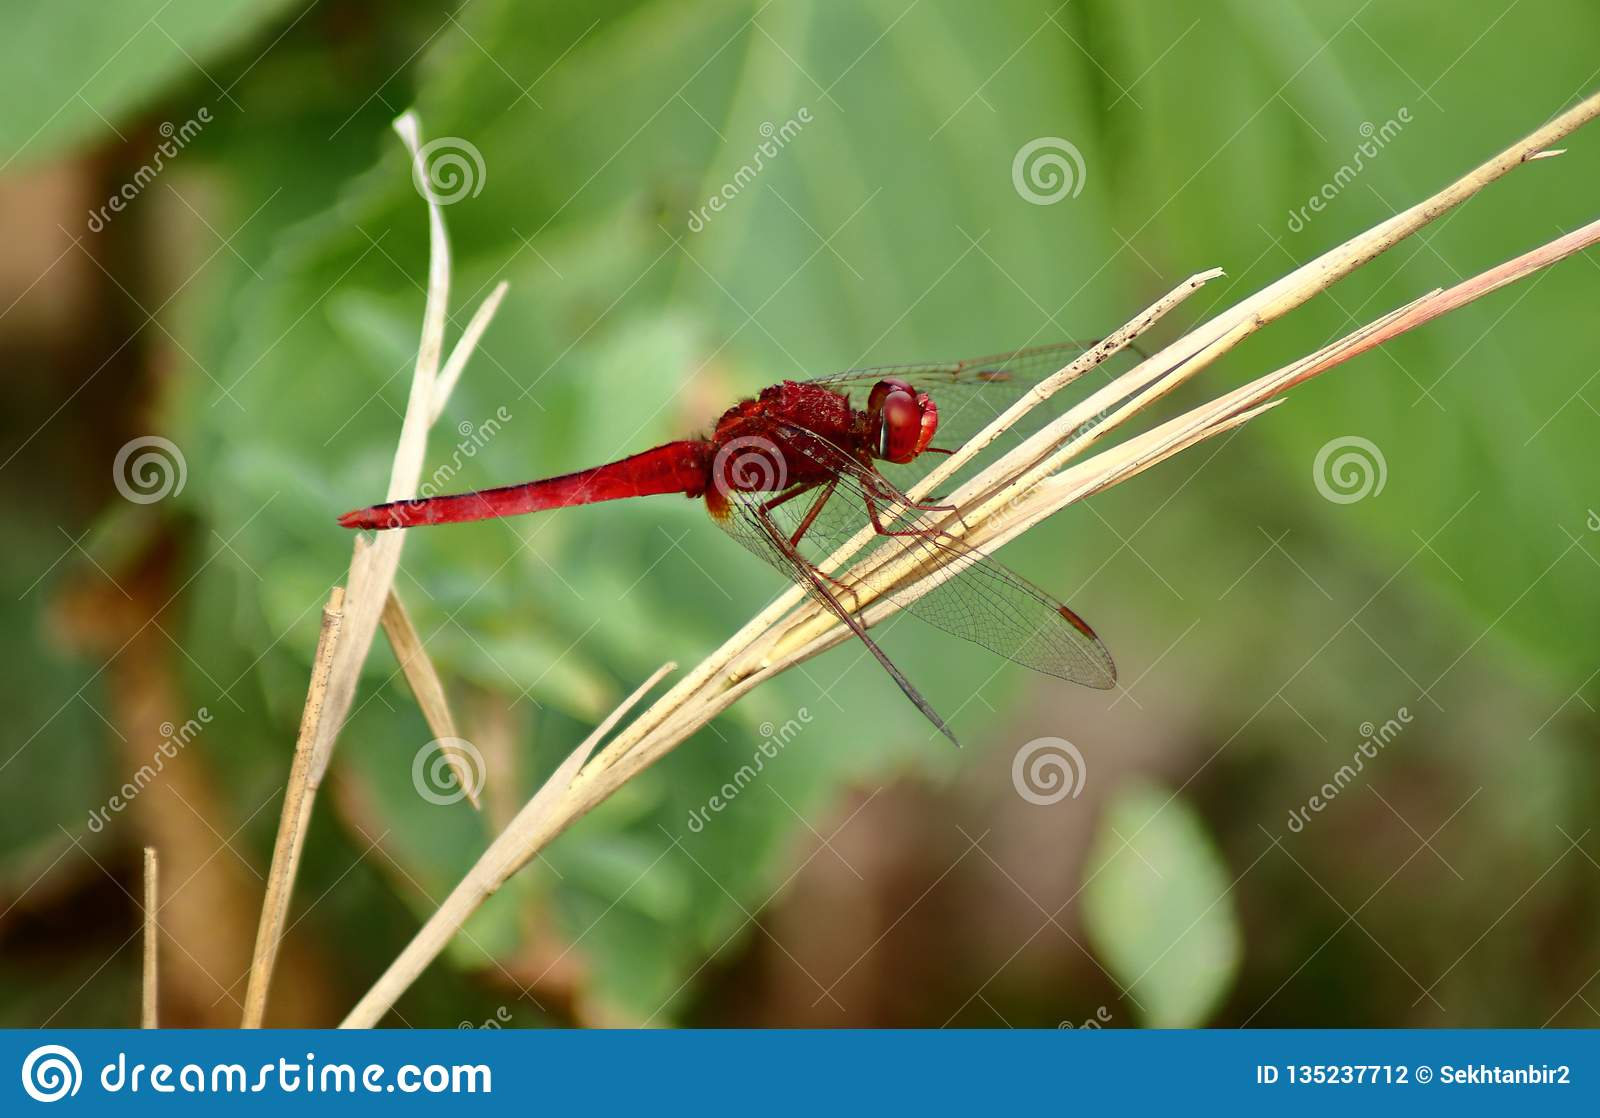 The Red Dragonfly is sitting on the dry grass